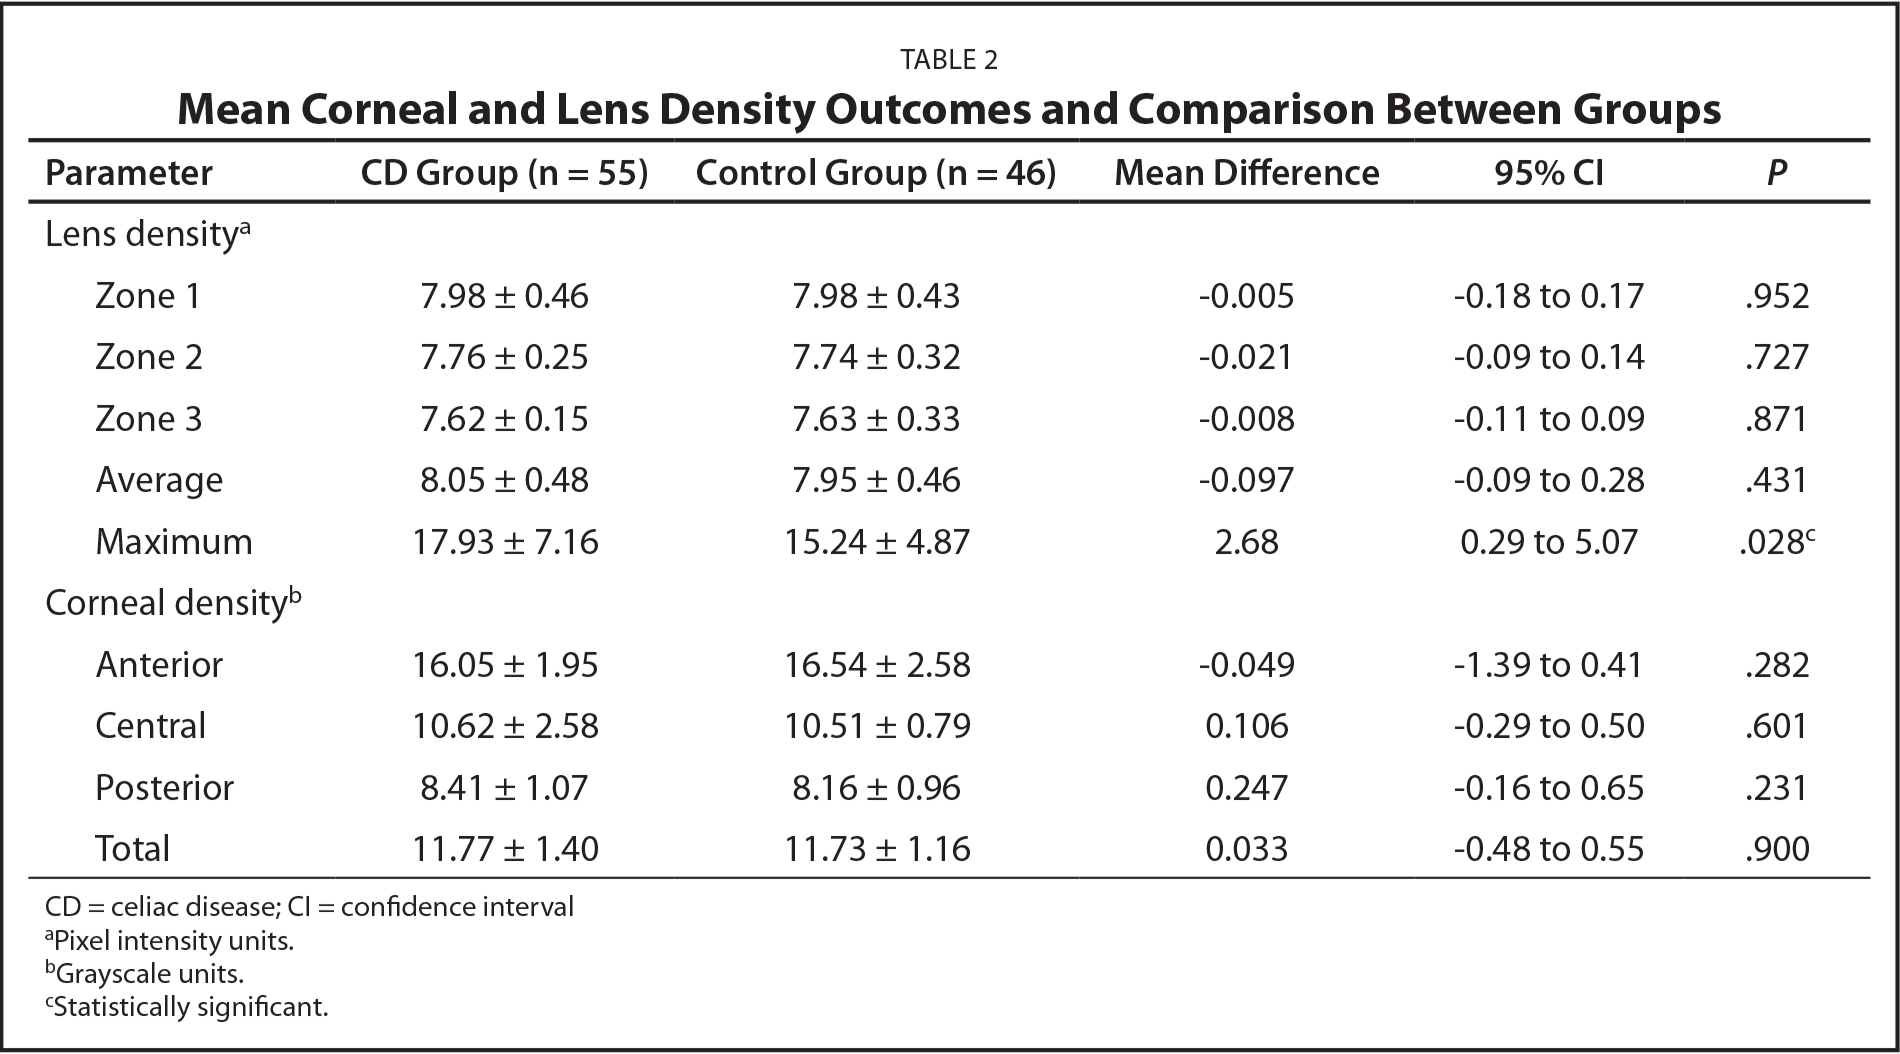 Mean Corneal and Lens Density Outcomes and Comparison Between Groups